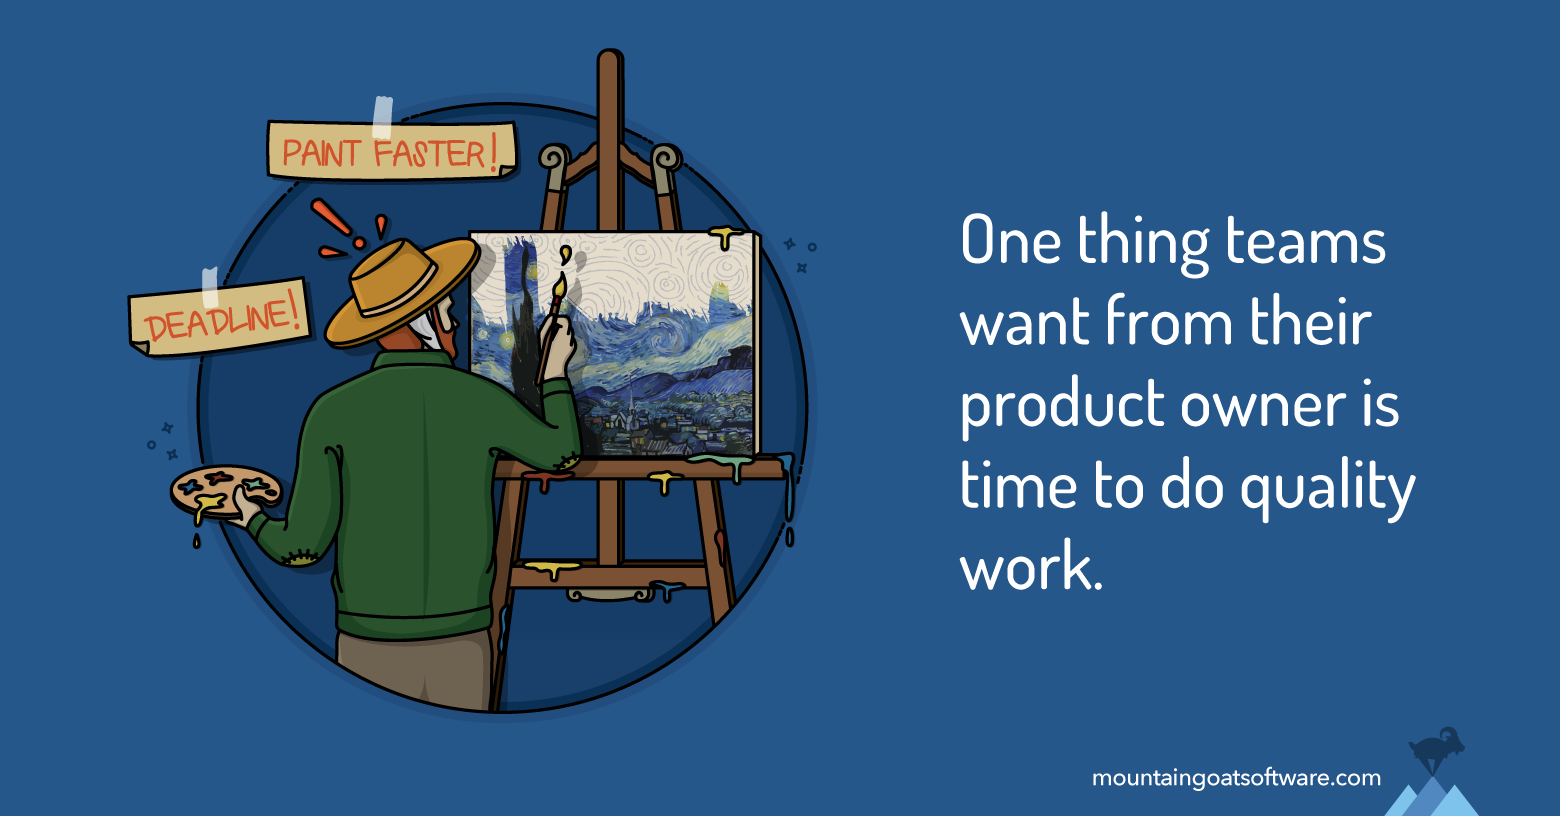 Six Things Your Team Wants from You as Their Product Owner